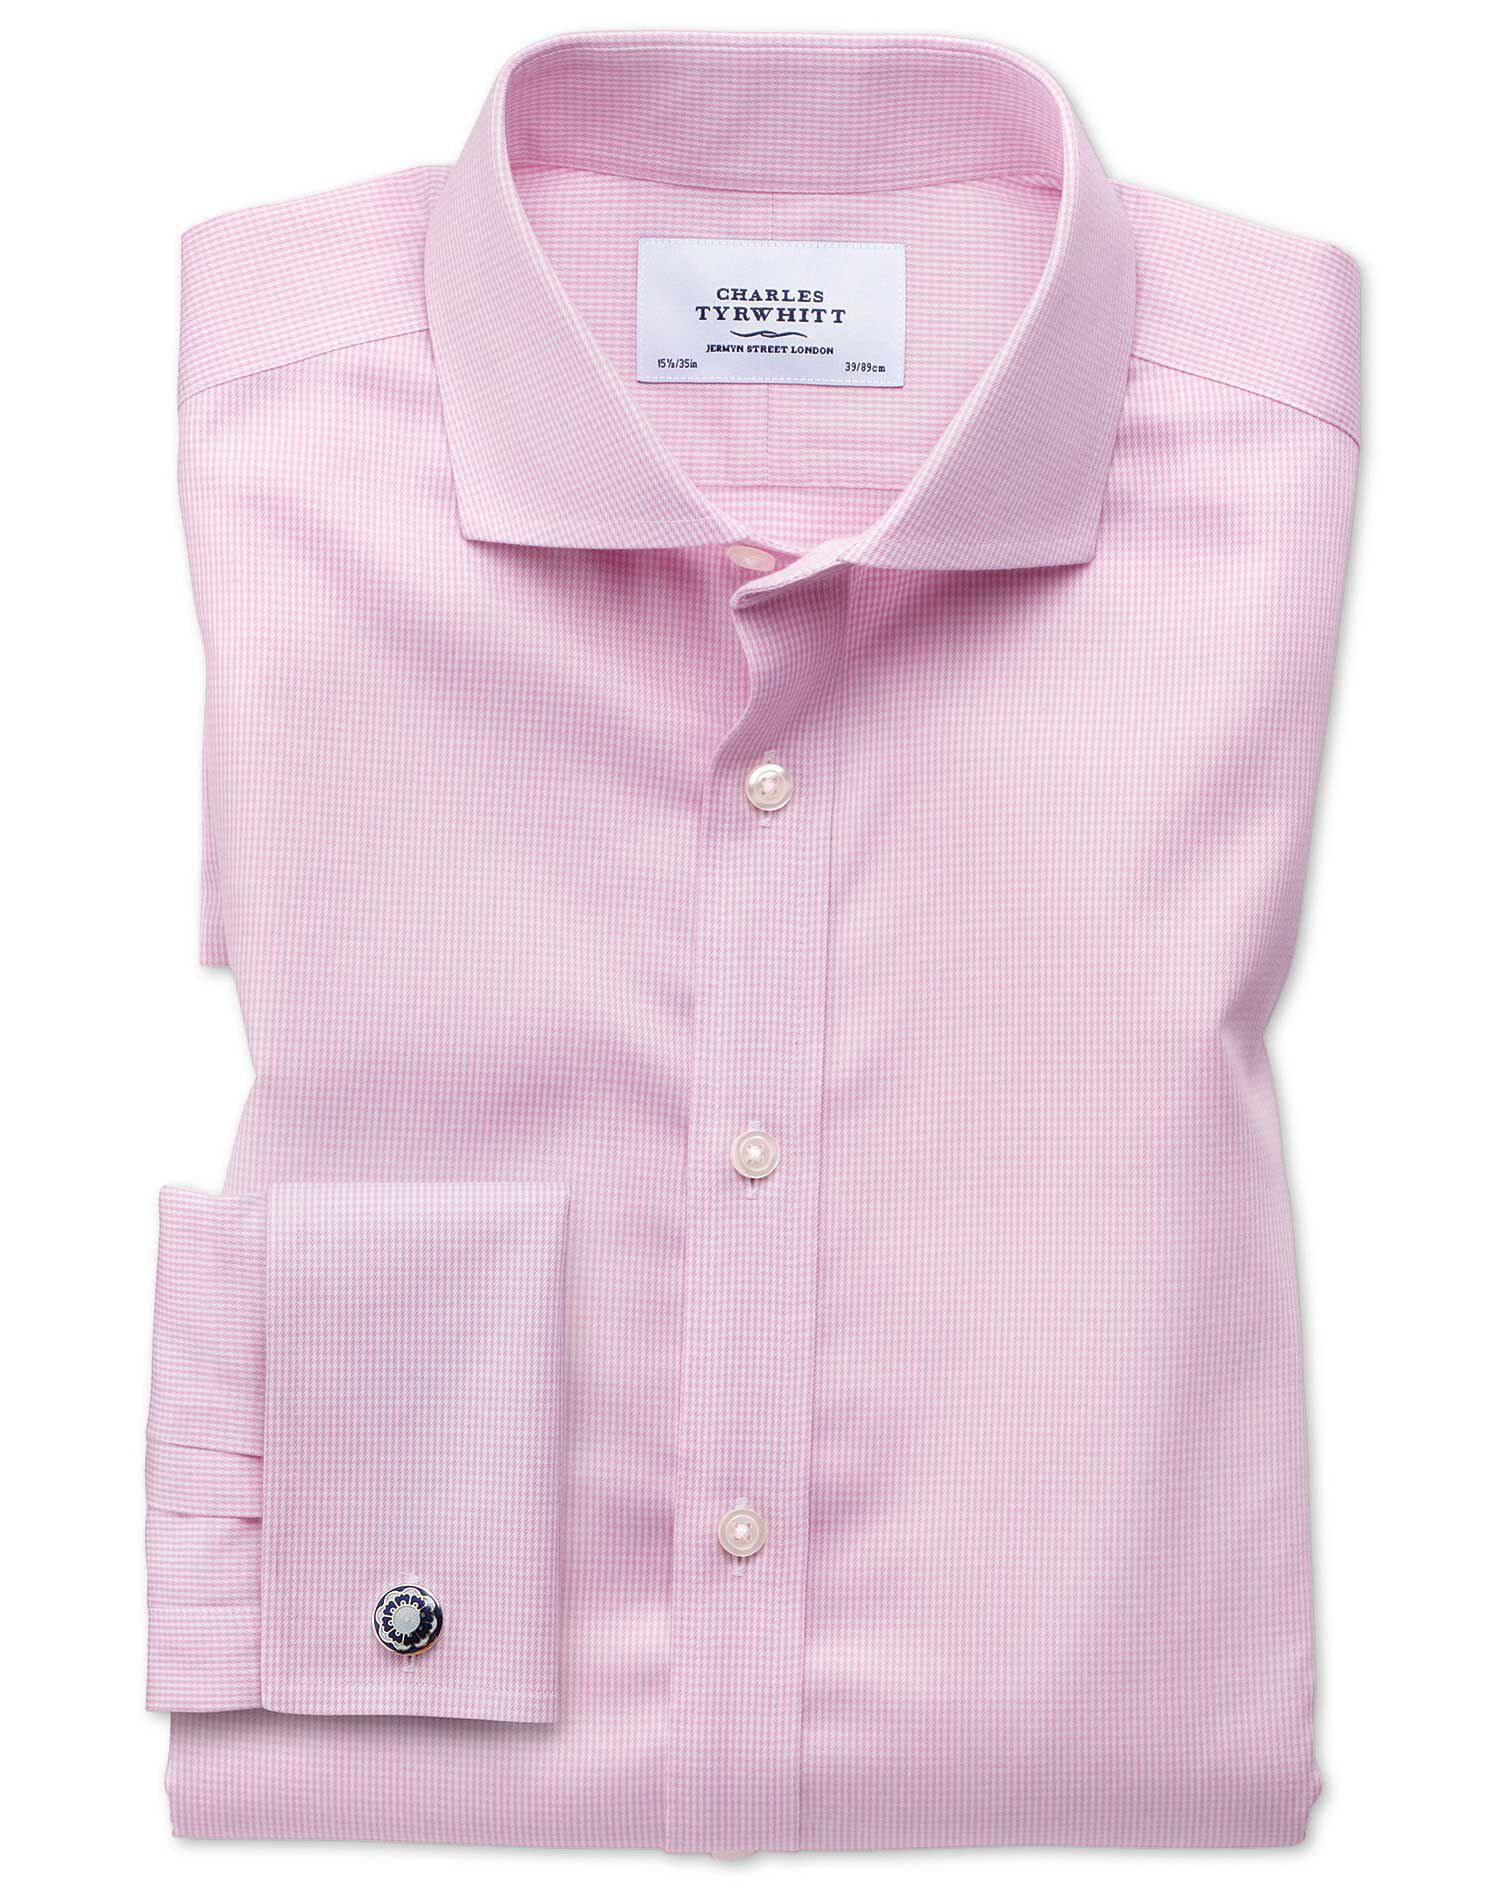 Slim Fit Cutaway Non-Iron Puppytooth Light Pink Cotton Formal Shirt Single Cuff Size 17/34 by Charle